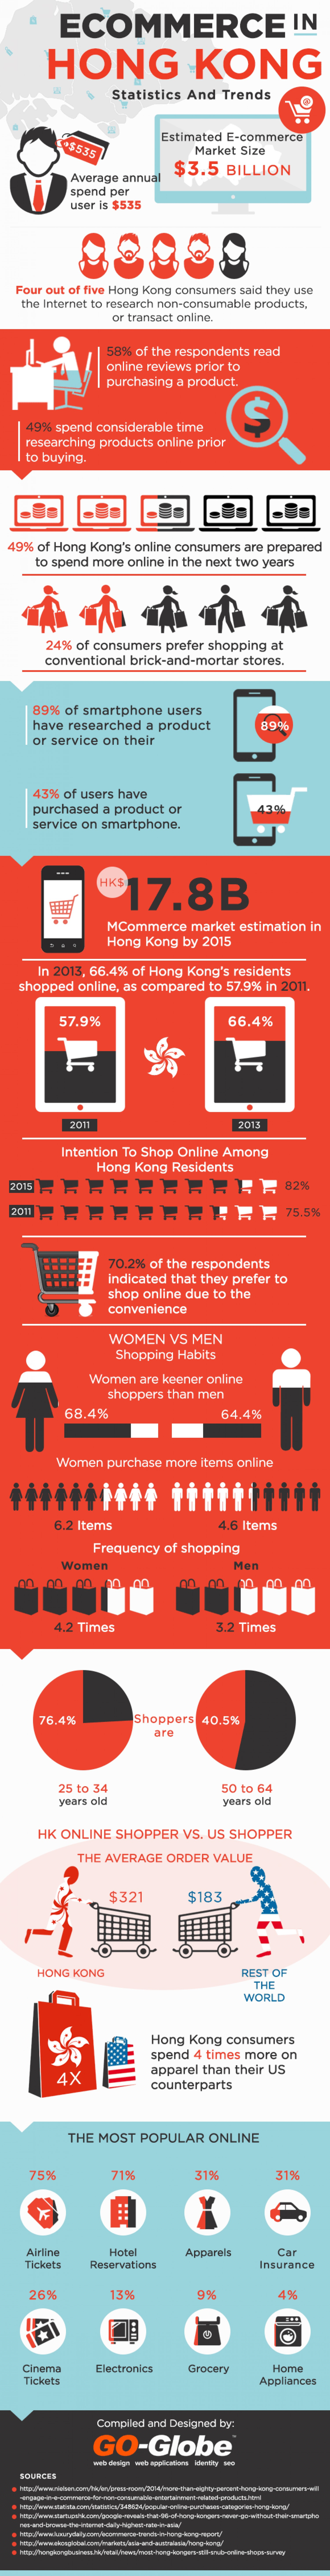 Ecommerce in Hong Kong